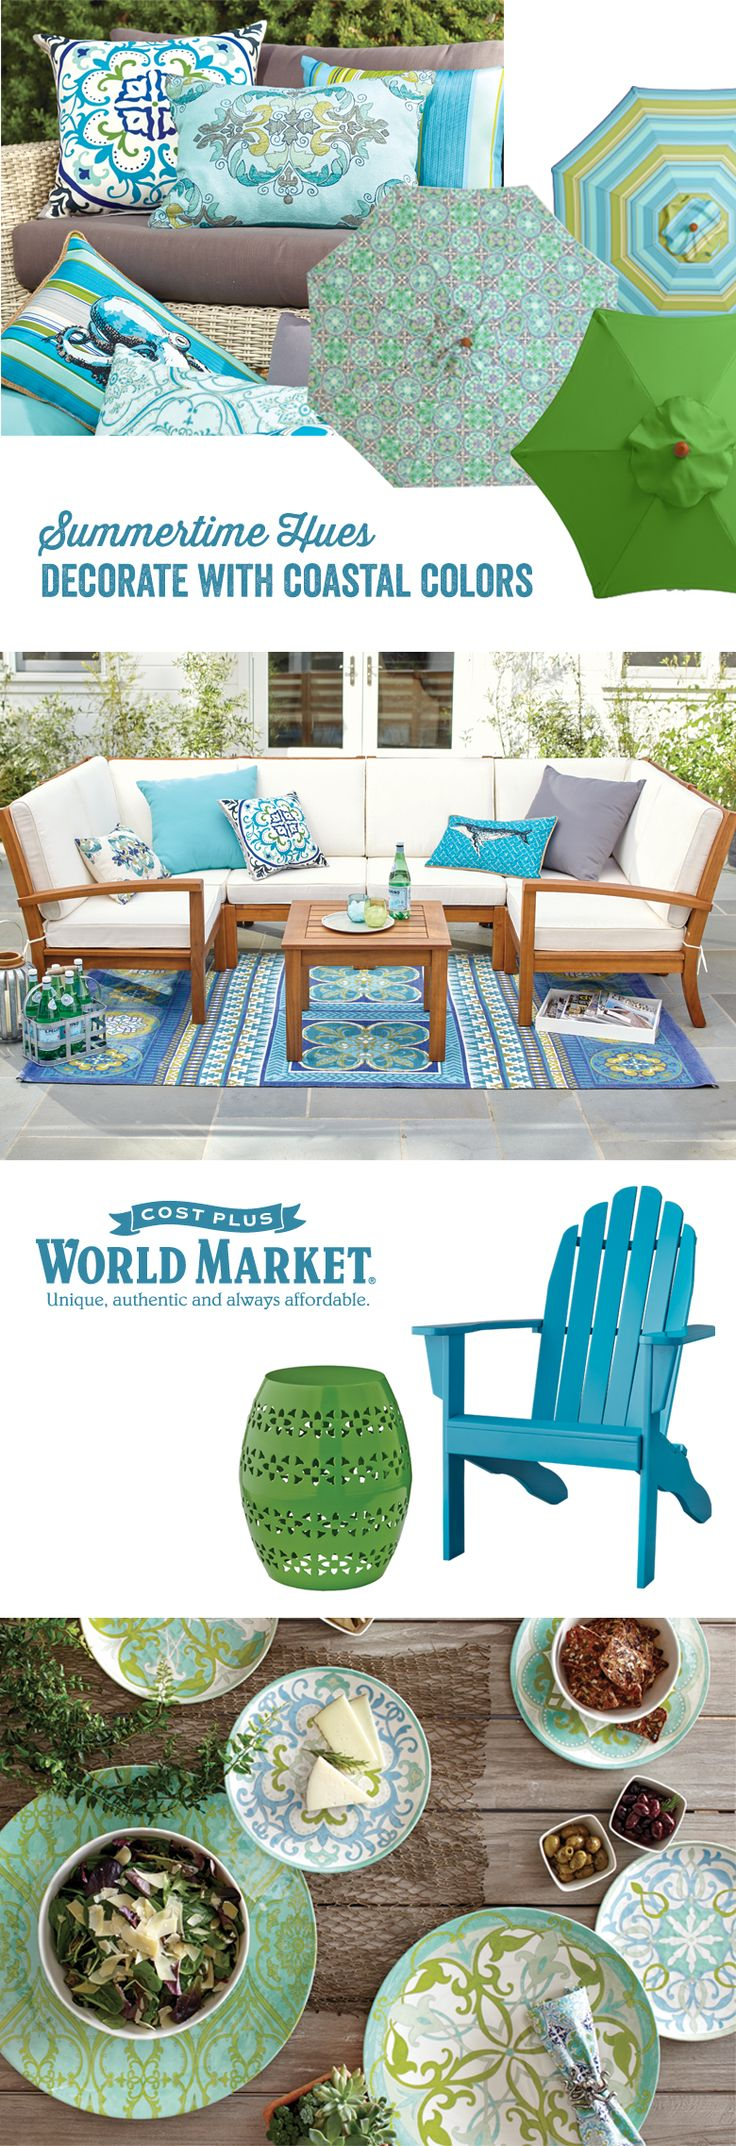 Find This Pin And More On Outdoor Entertaining U0026 Decor By Worldmarket.